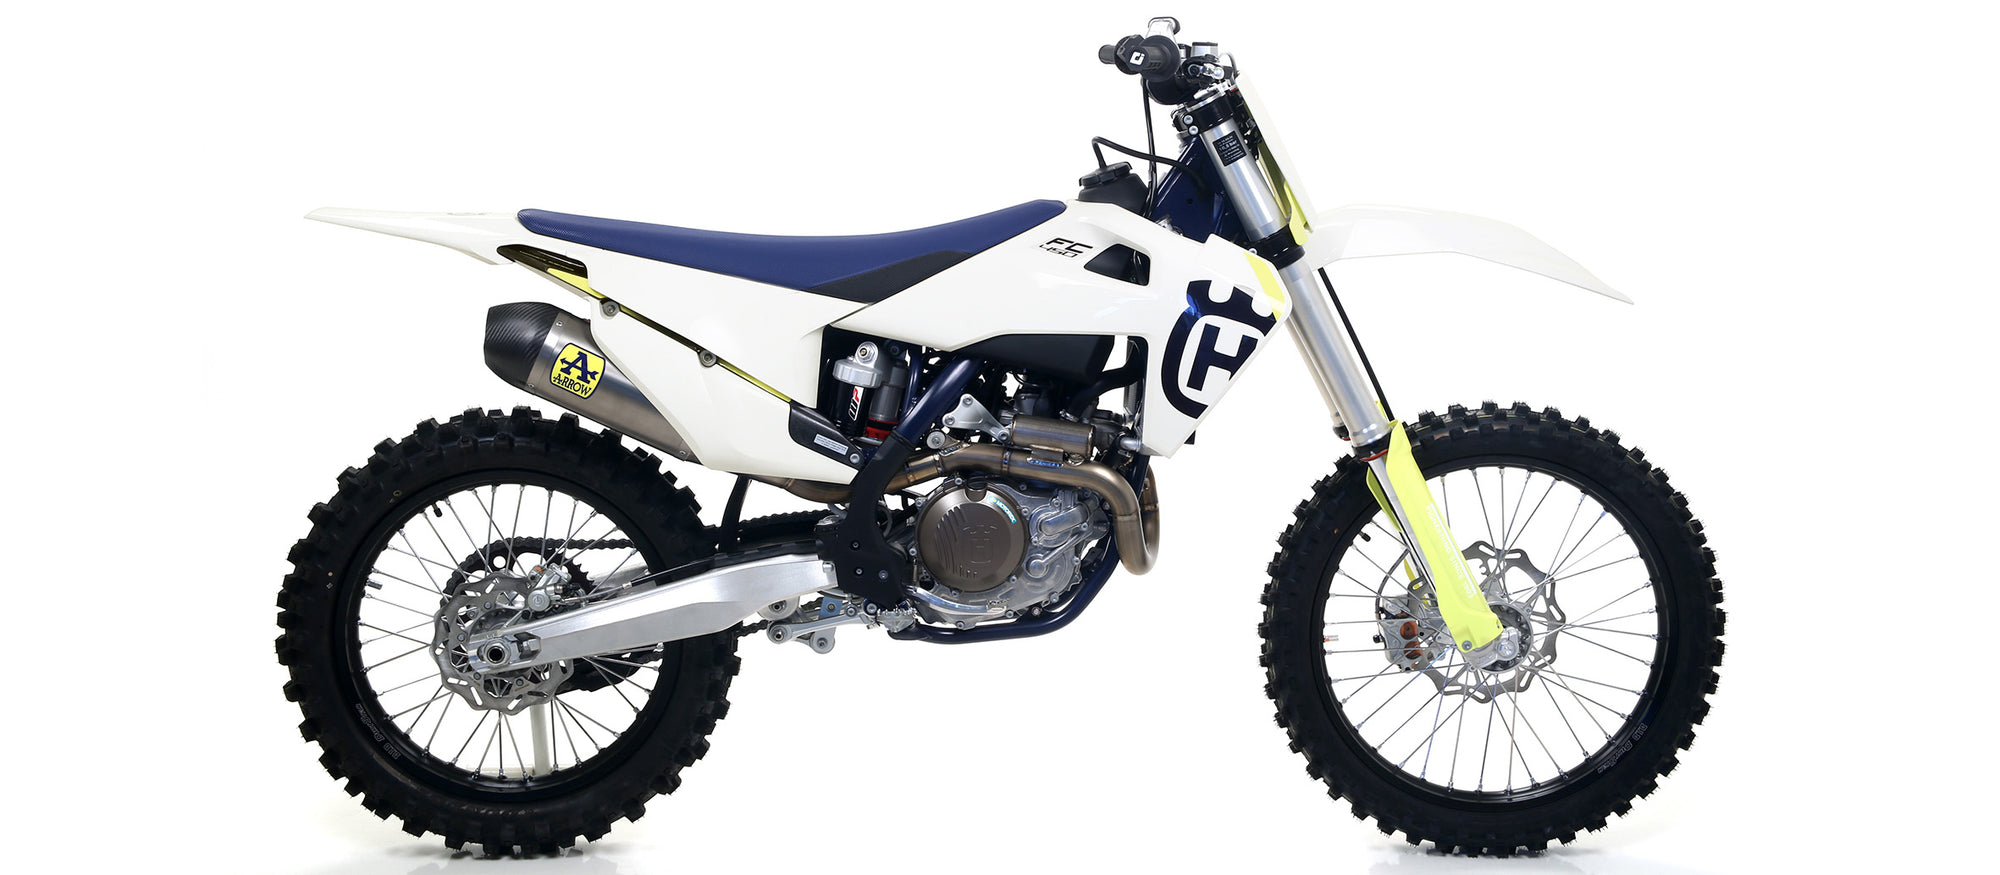 MX Comp - Husqvarna, Exhaust, Arrow - Averys Motorcycles